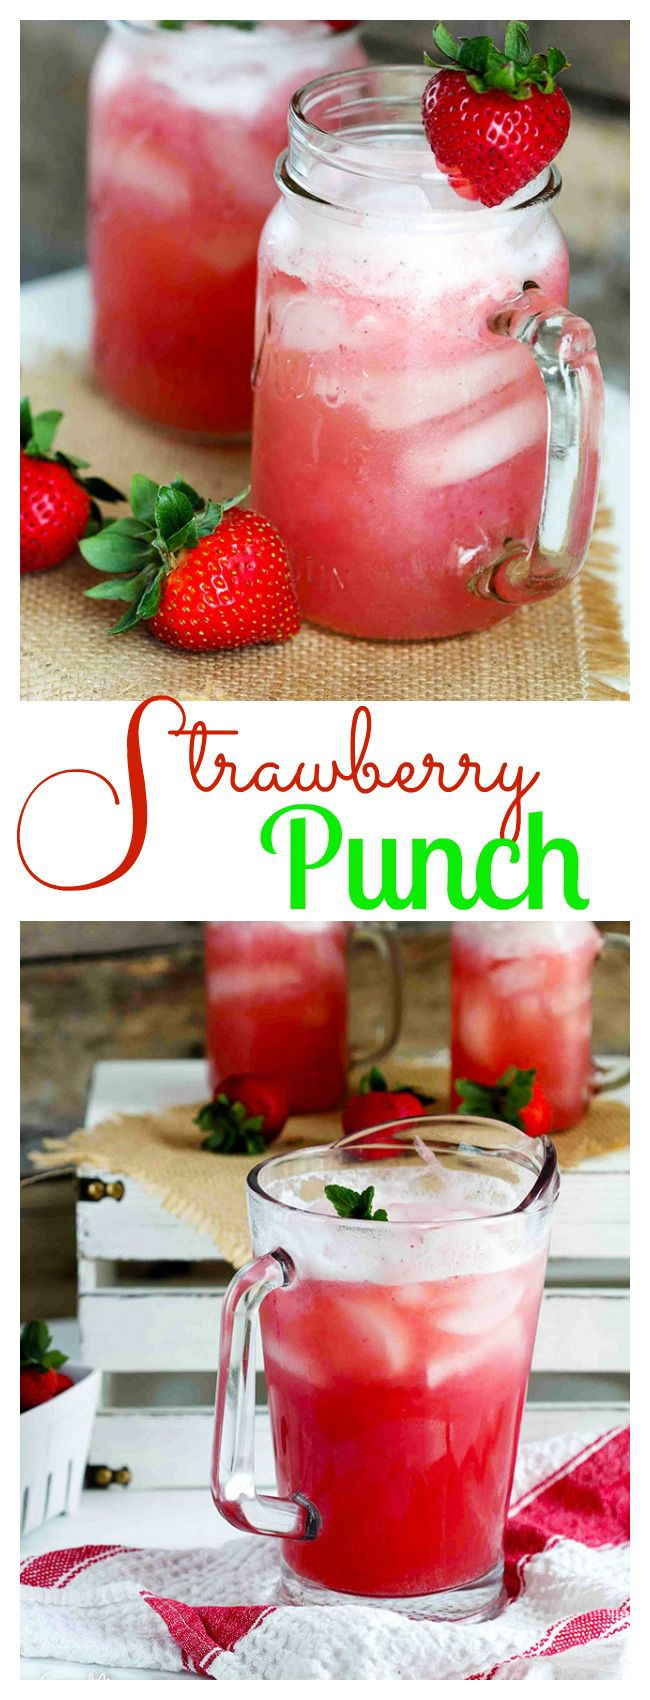 Strawberry Punch Strawberry Drinks Punch Recipes Punch Drinks